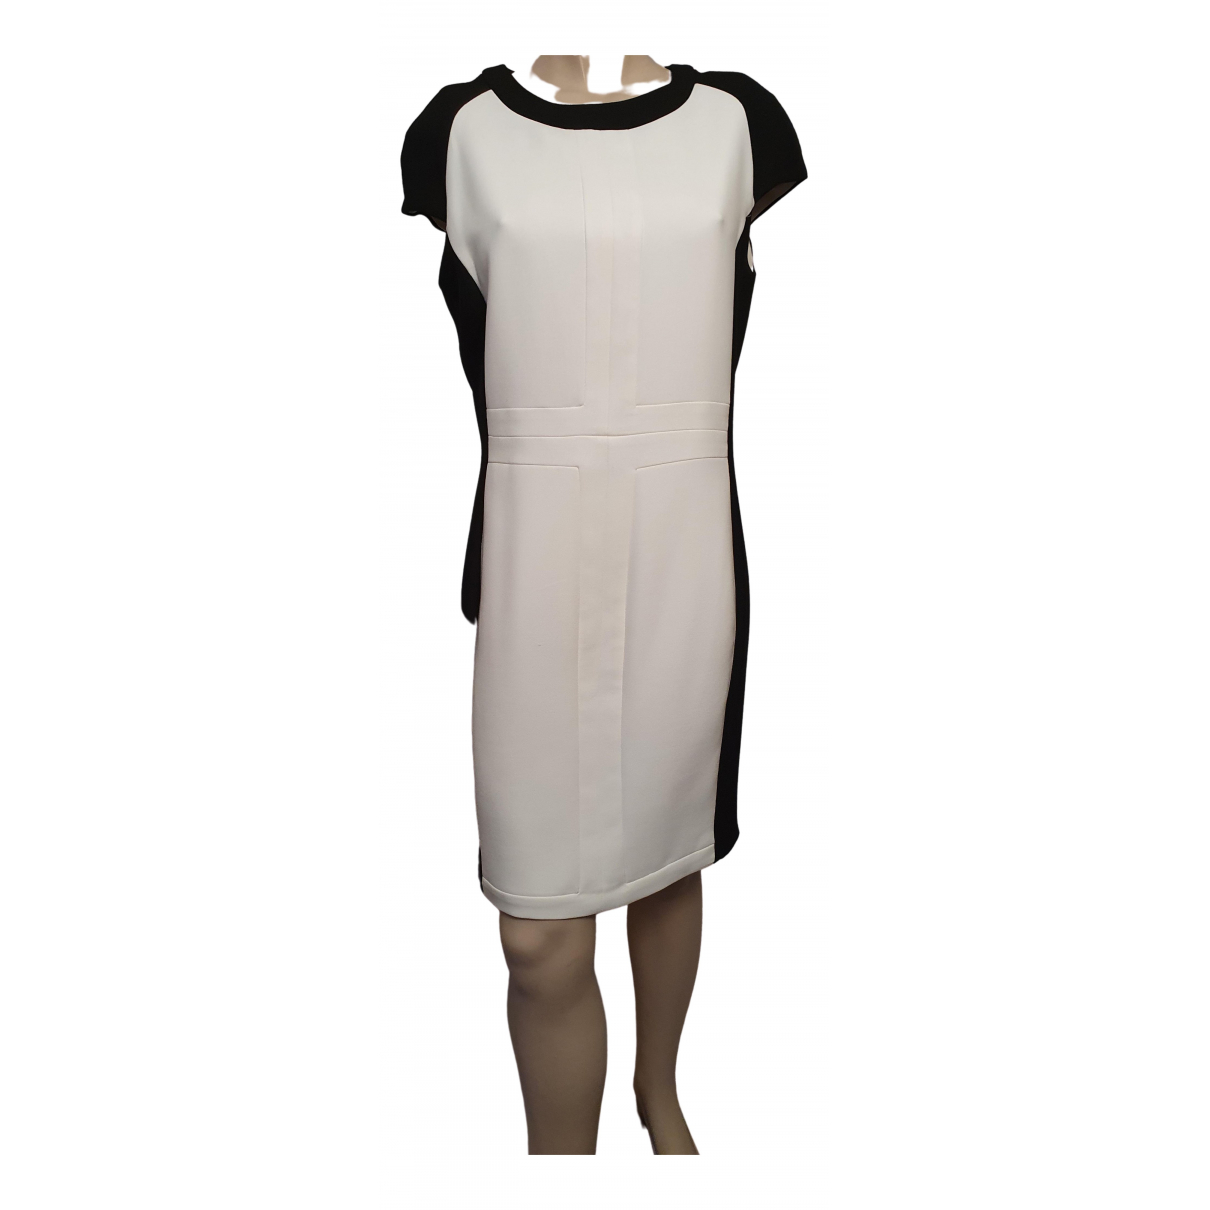 Zara \N White dress for Women L International